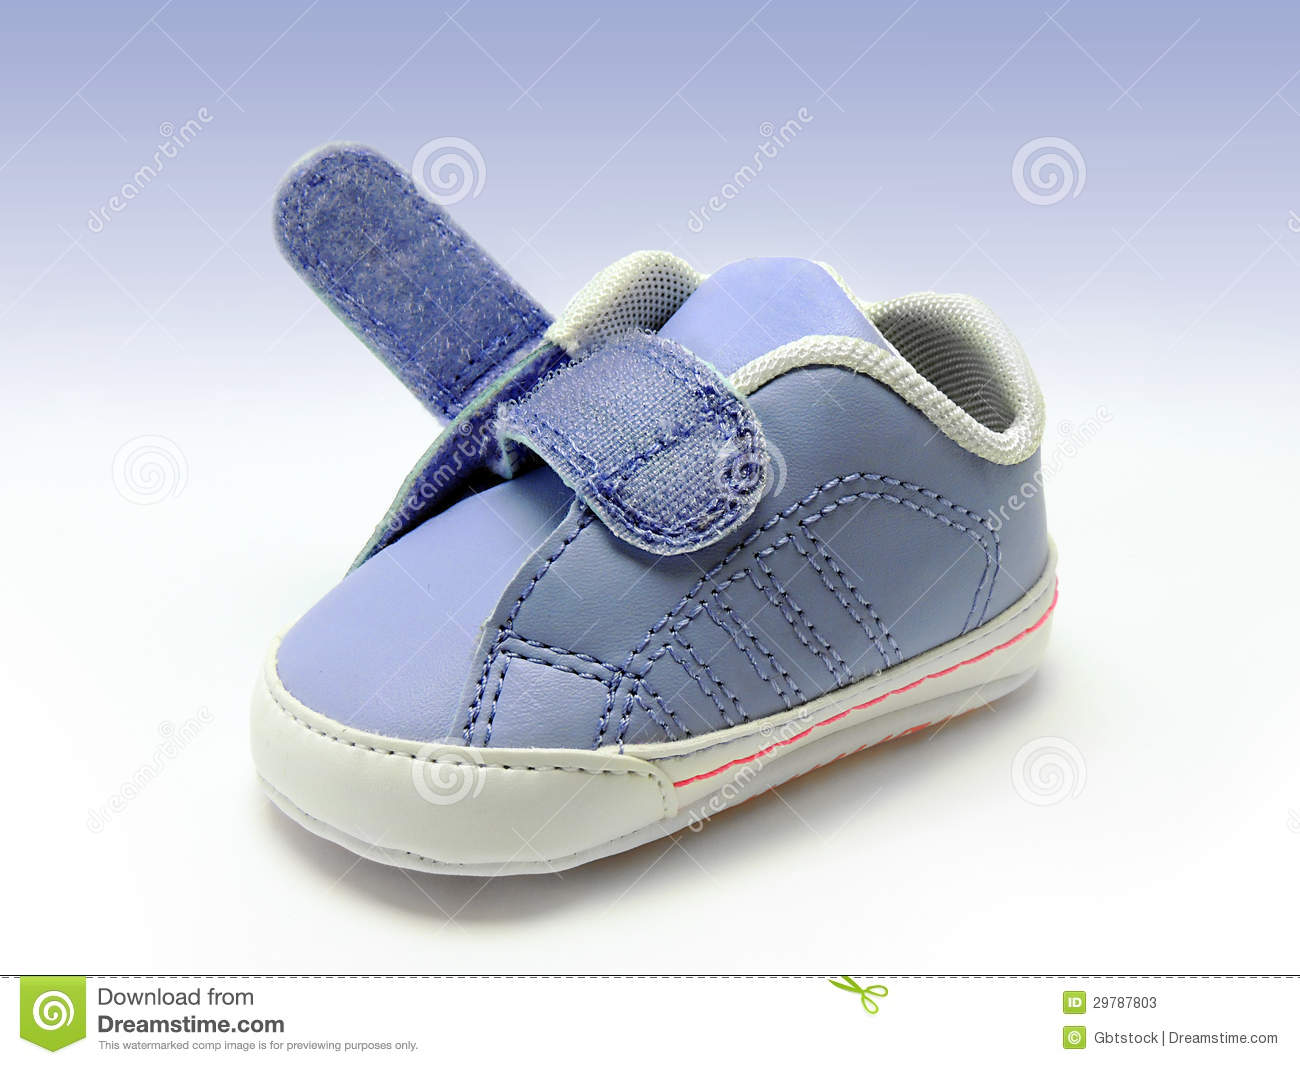 https://thumbs.dreamstime.com/z/baby-sneaker-open-velcro-strap-isolated-clipping-path-included-29787803.jpg